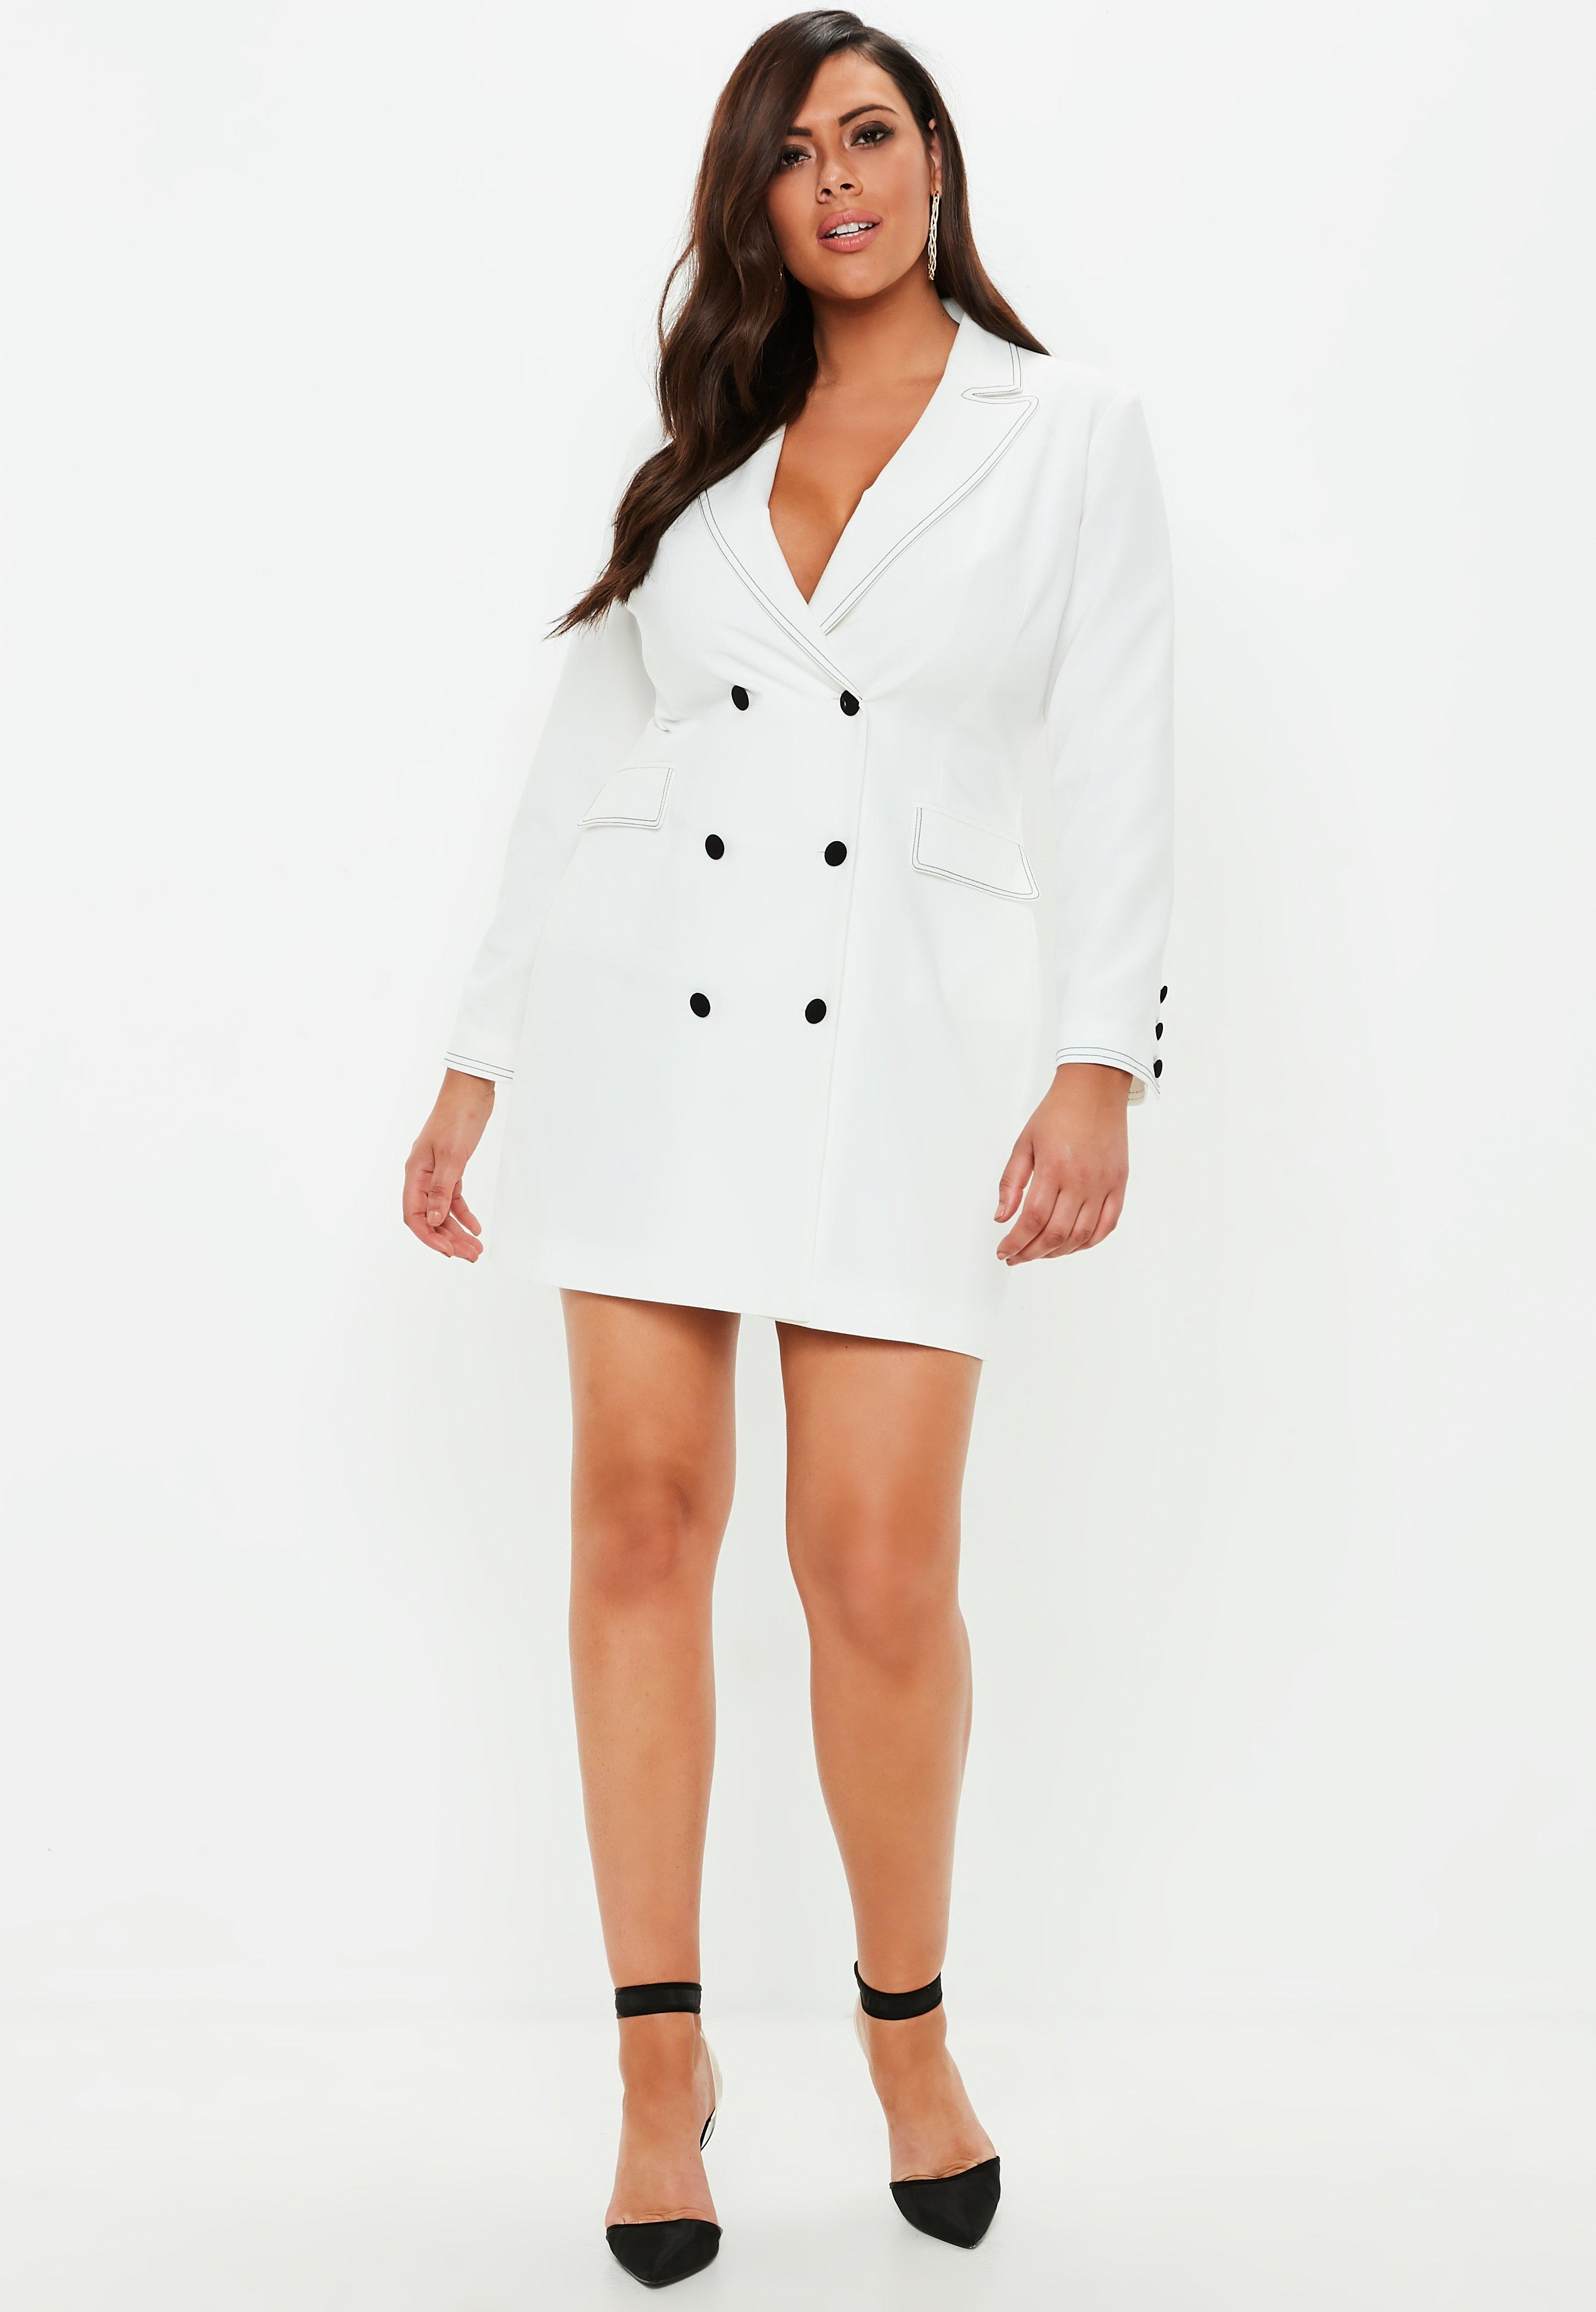 Lyst - Missguided Plus Size White Crepe Contrast Stitch ...